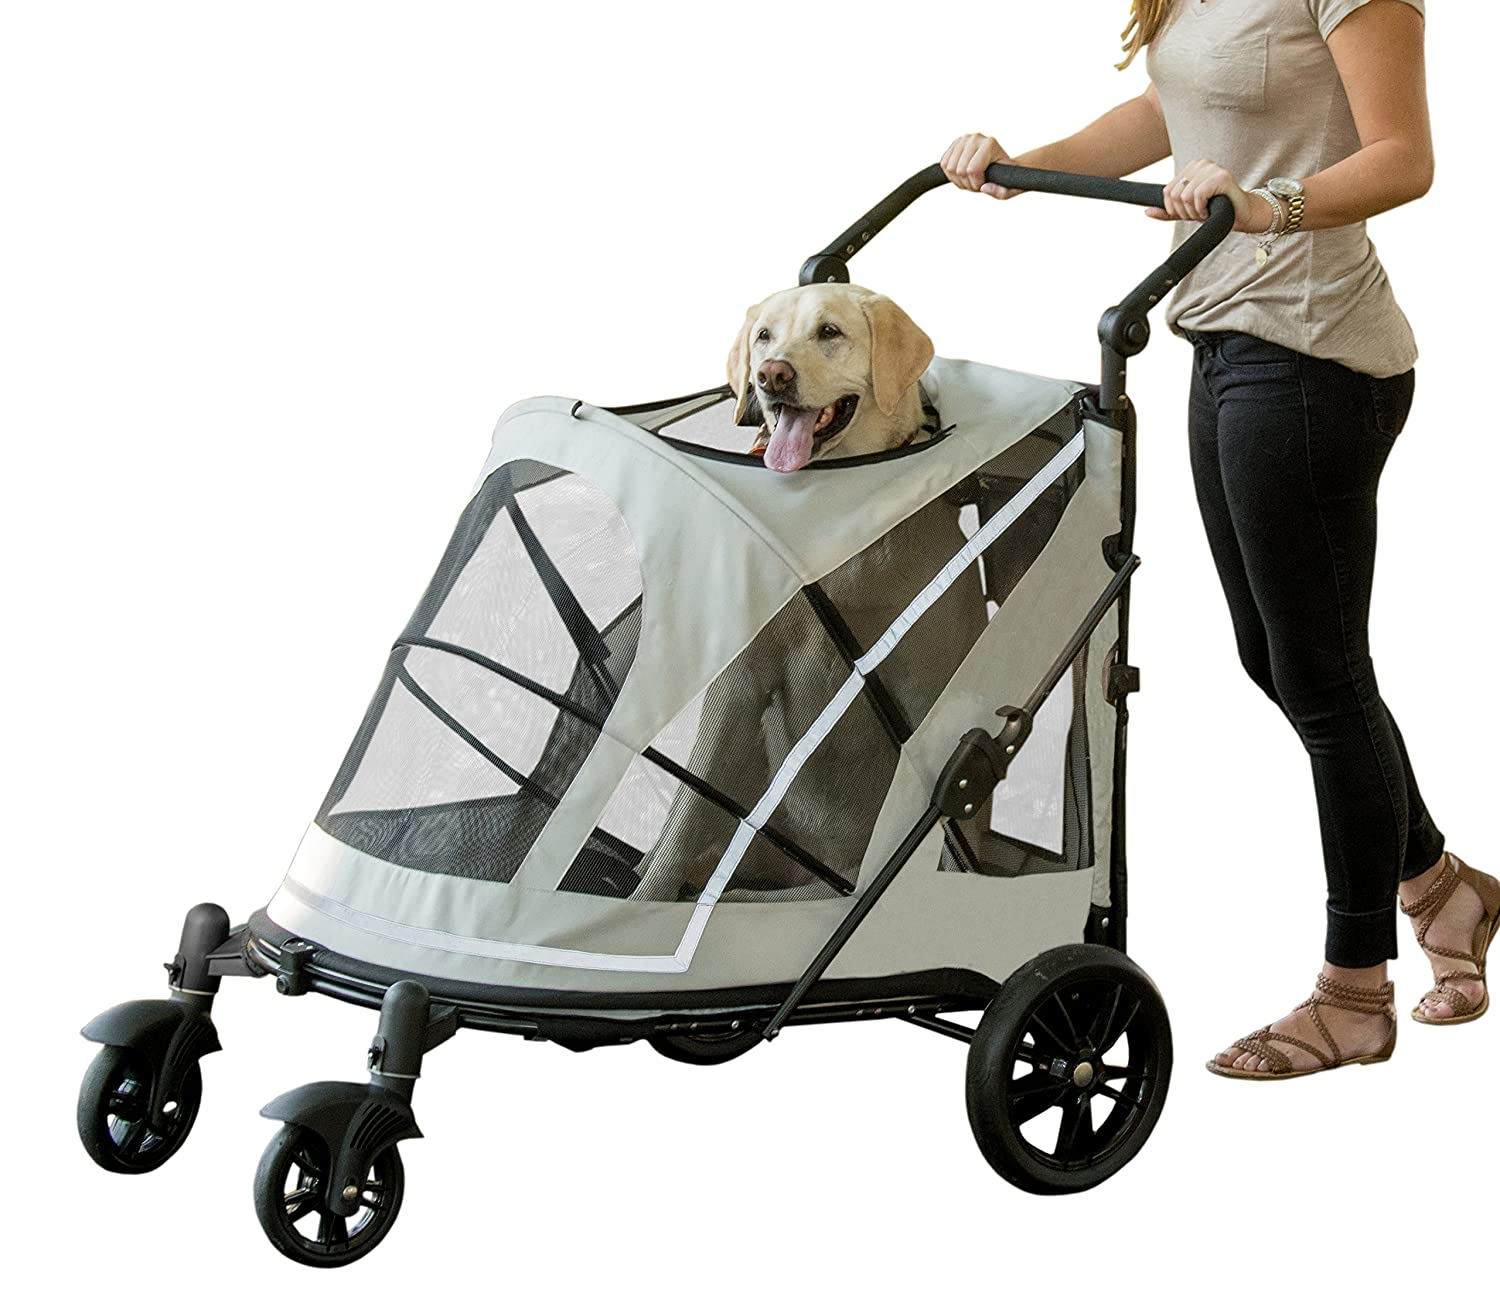 7 Best Dog strollers for Small, Medium and Large Dogs 6